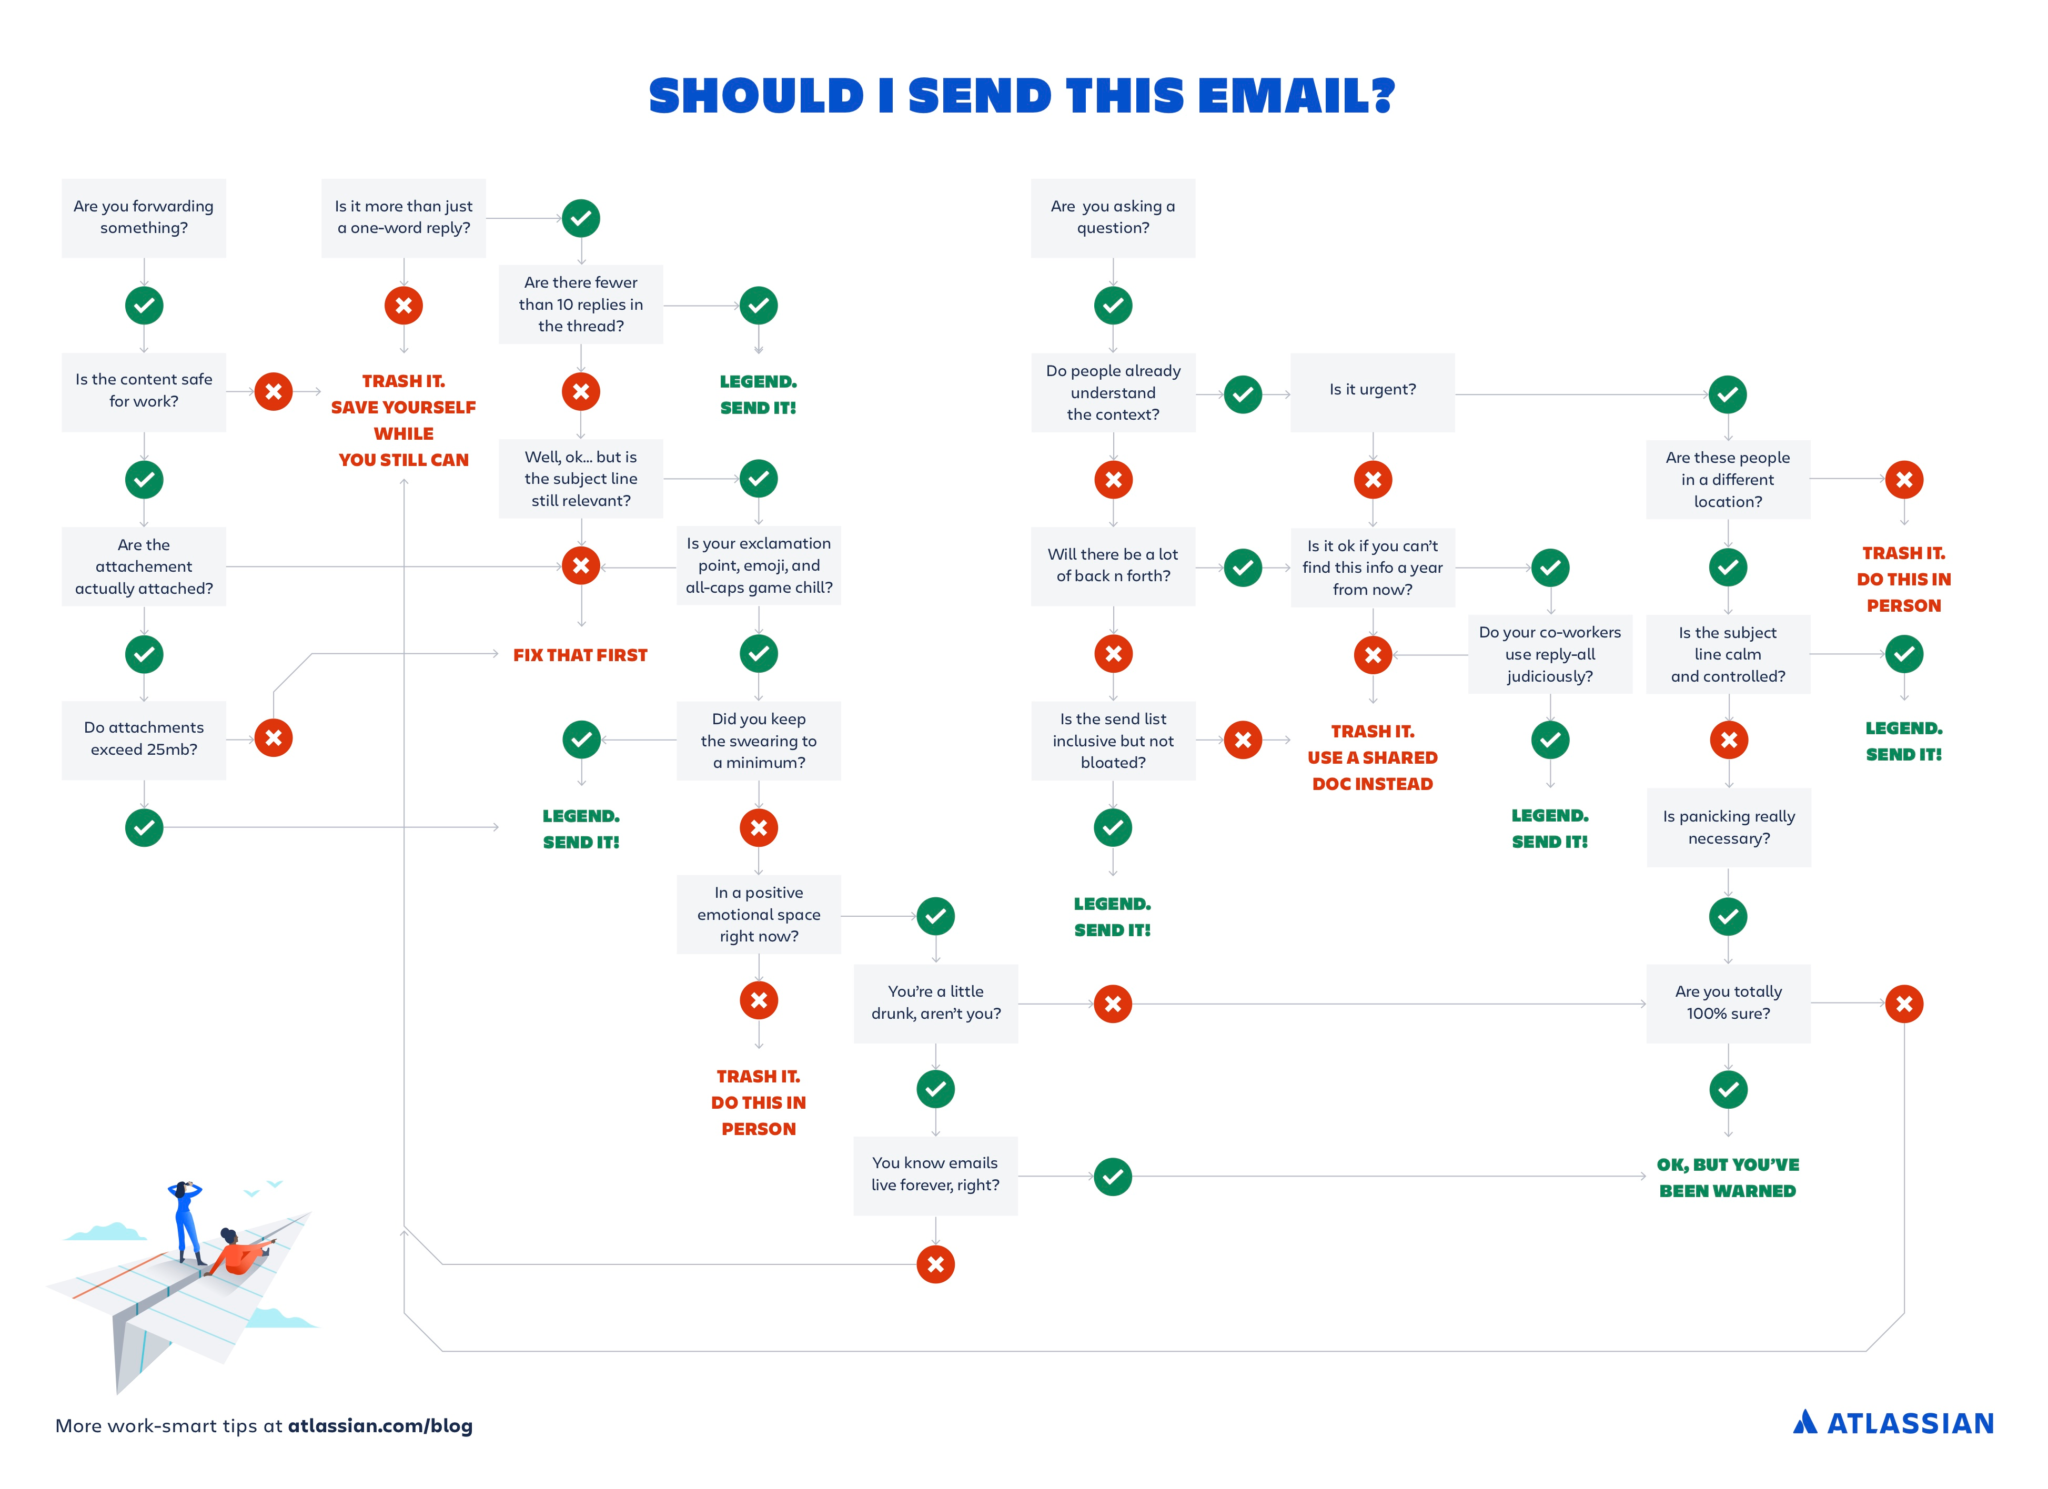 A flowchart to help you decide whether you really need to send that email